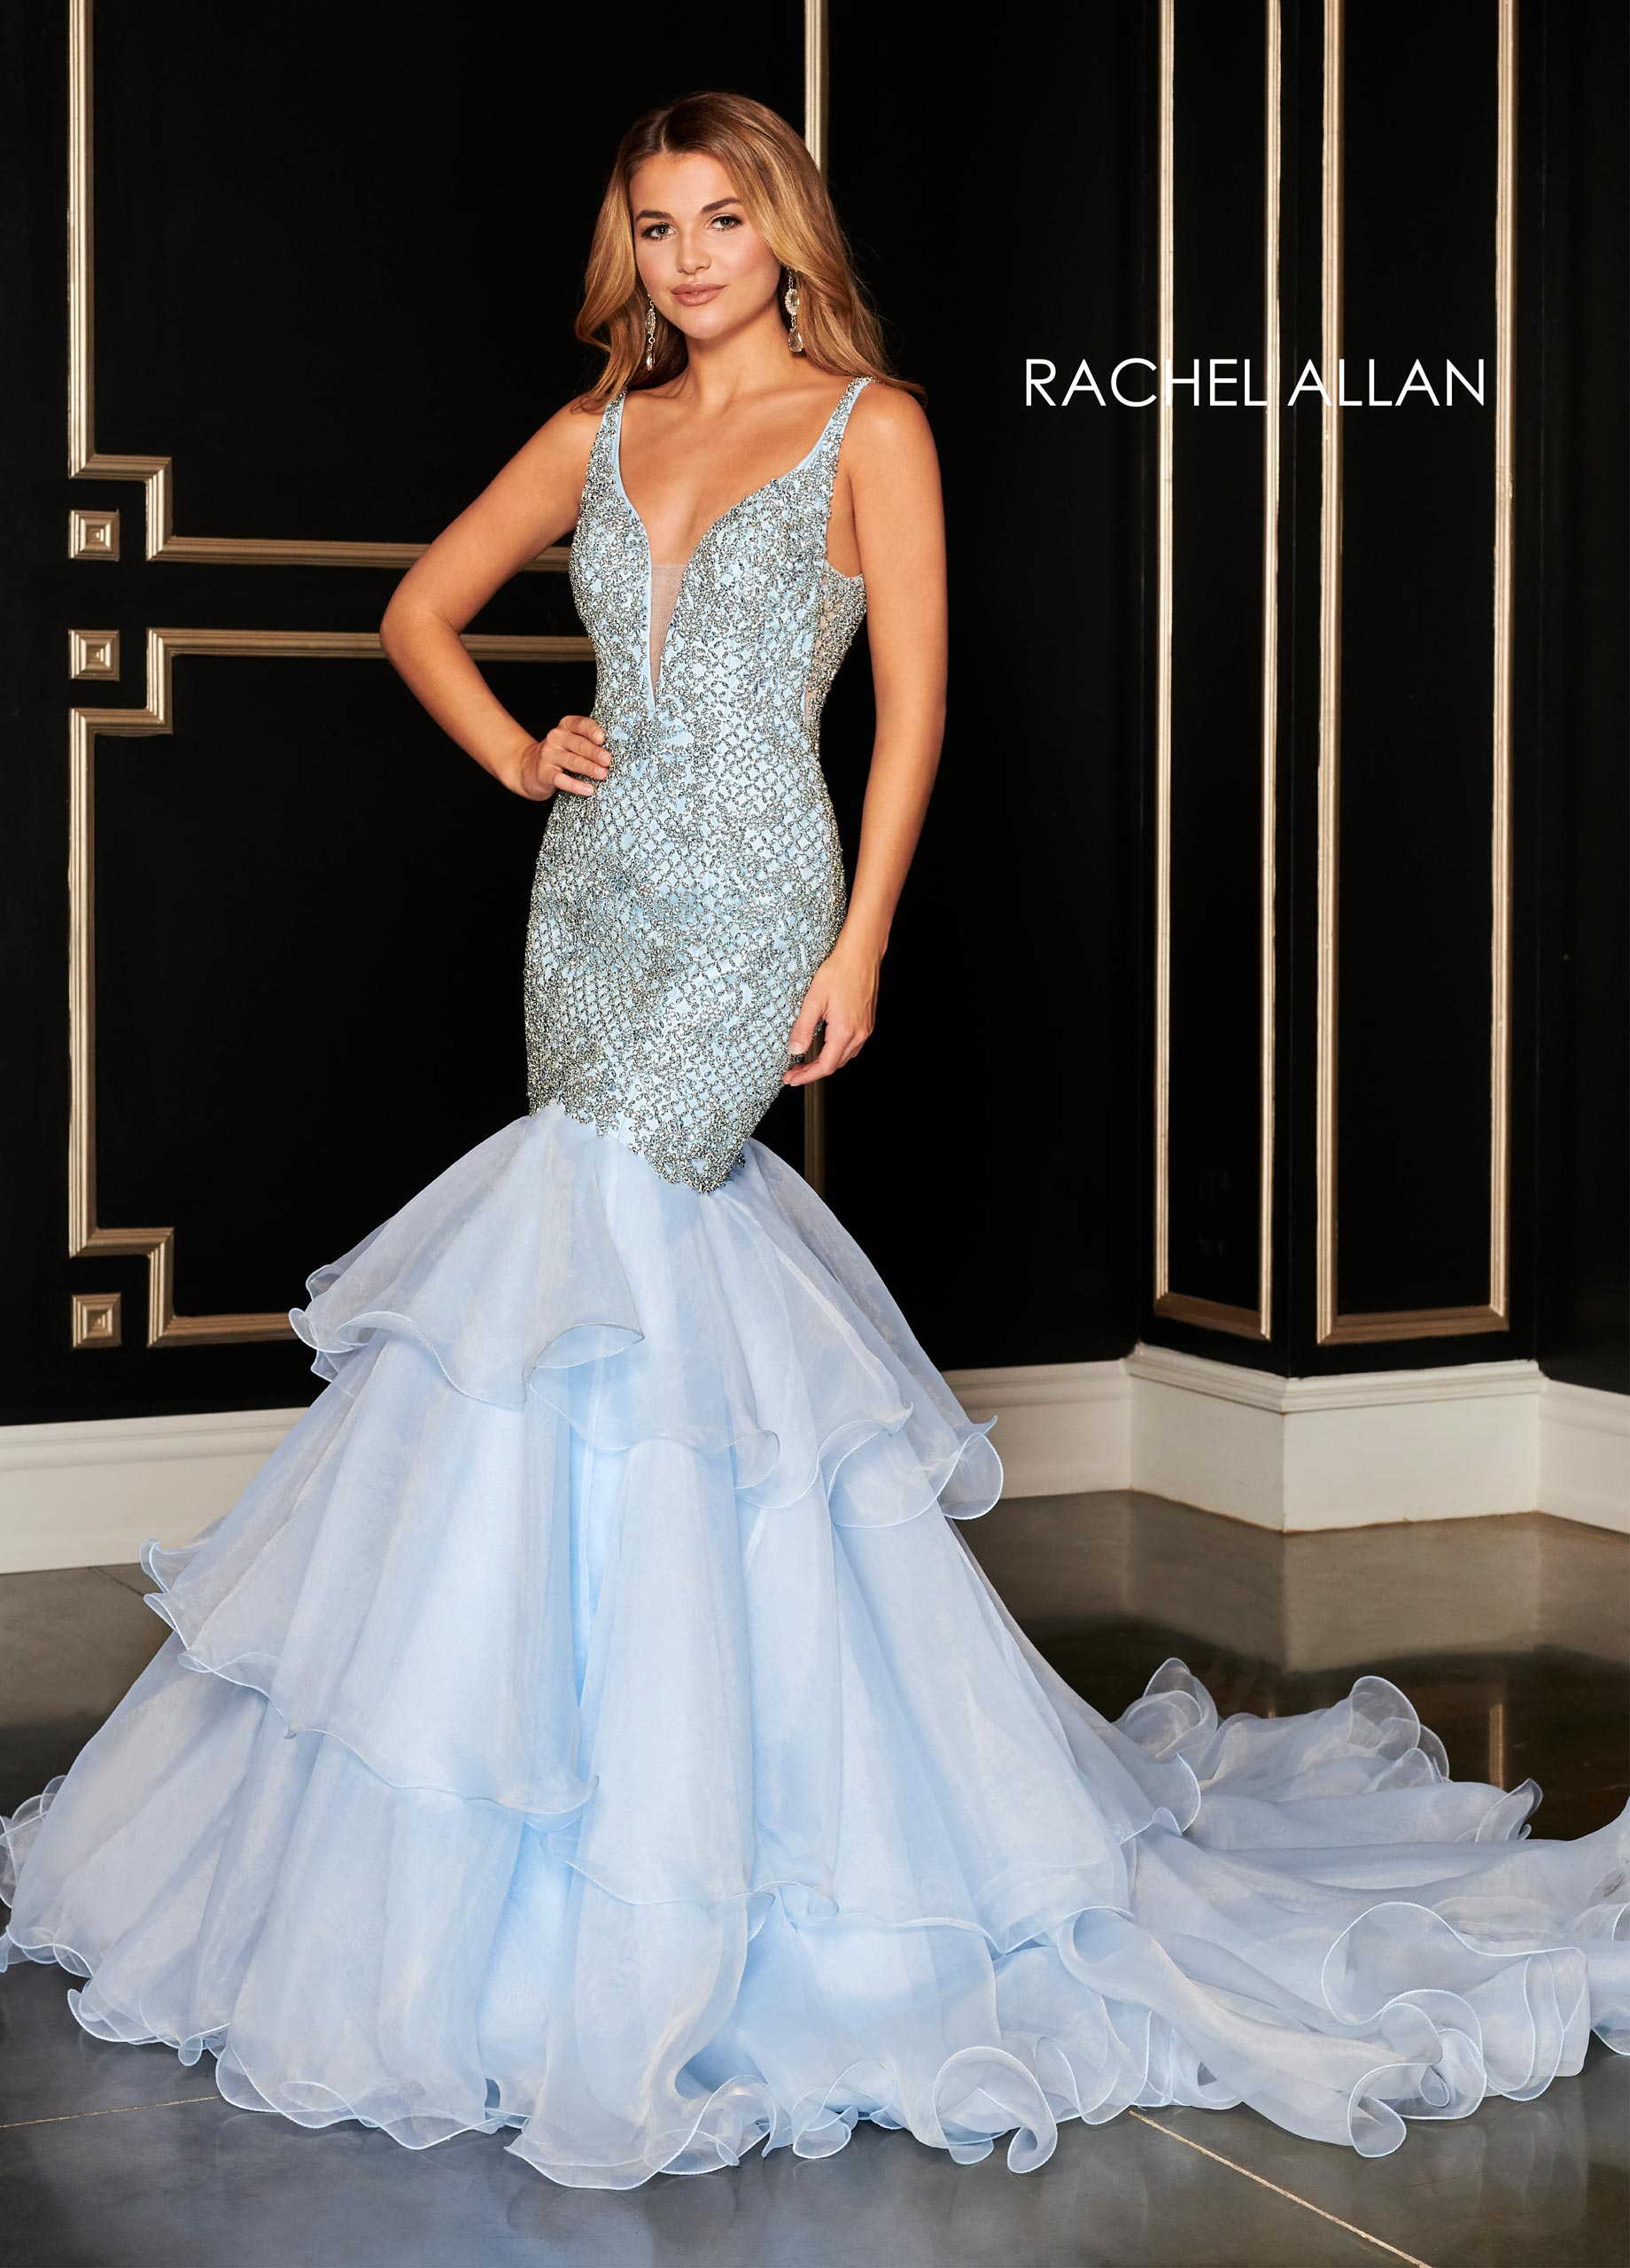 V-Neck Mermaid Pageant Dresses in Blue Color